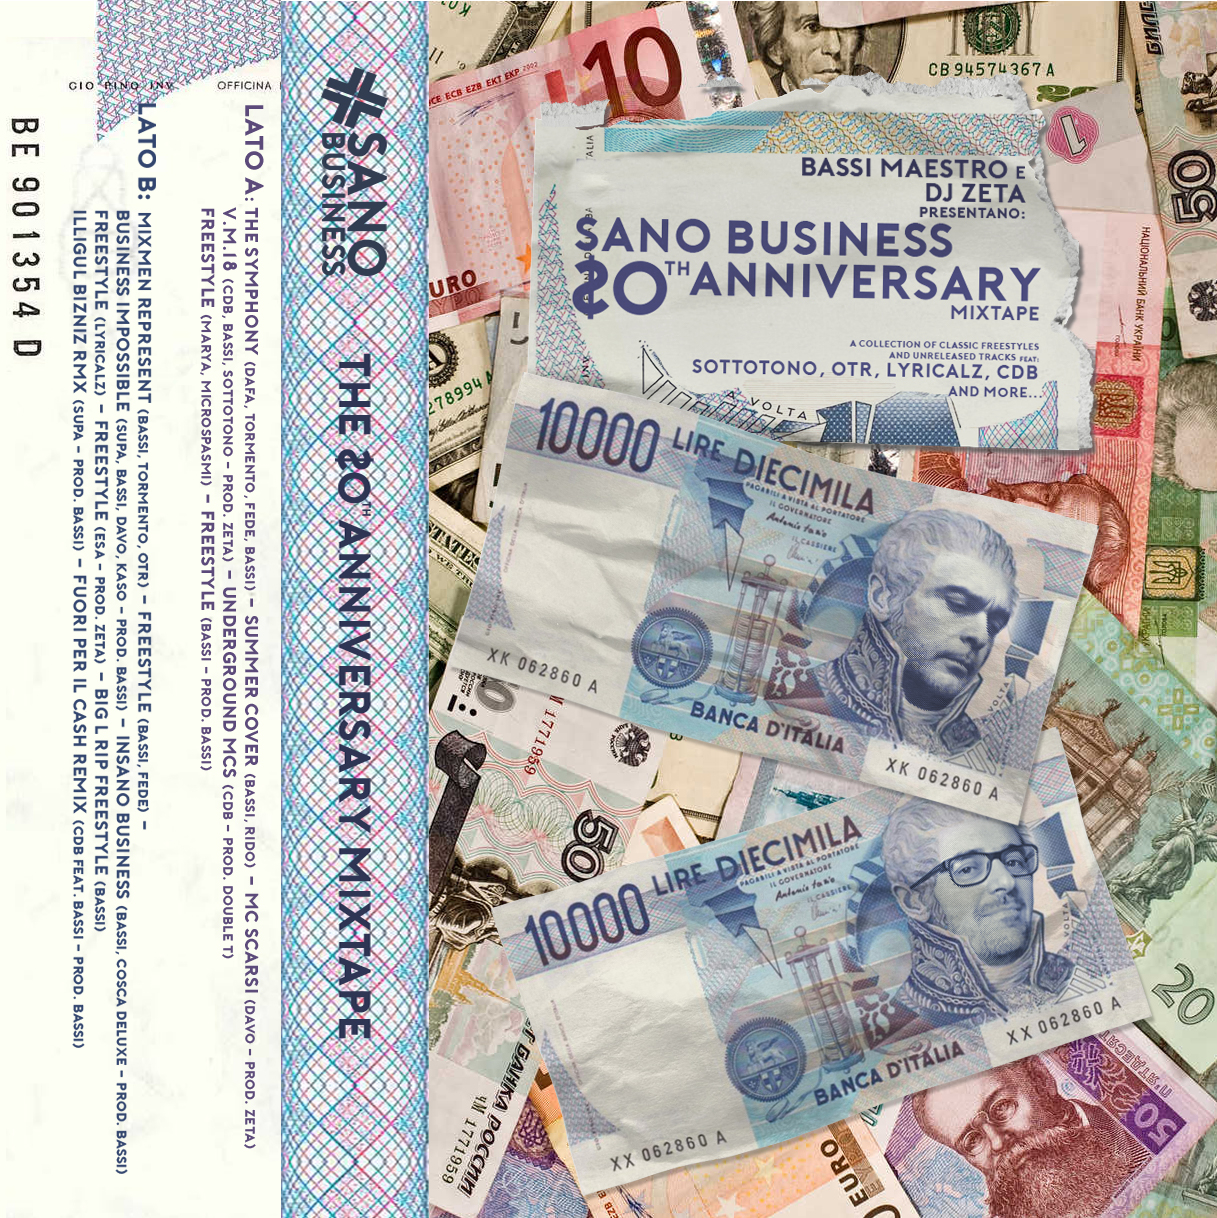 AAVV – SanoBusiness 20th Anniversary Mixtape